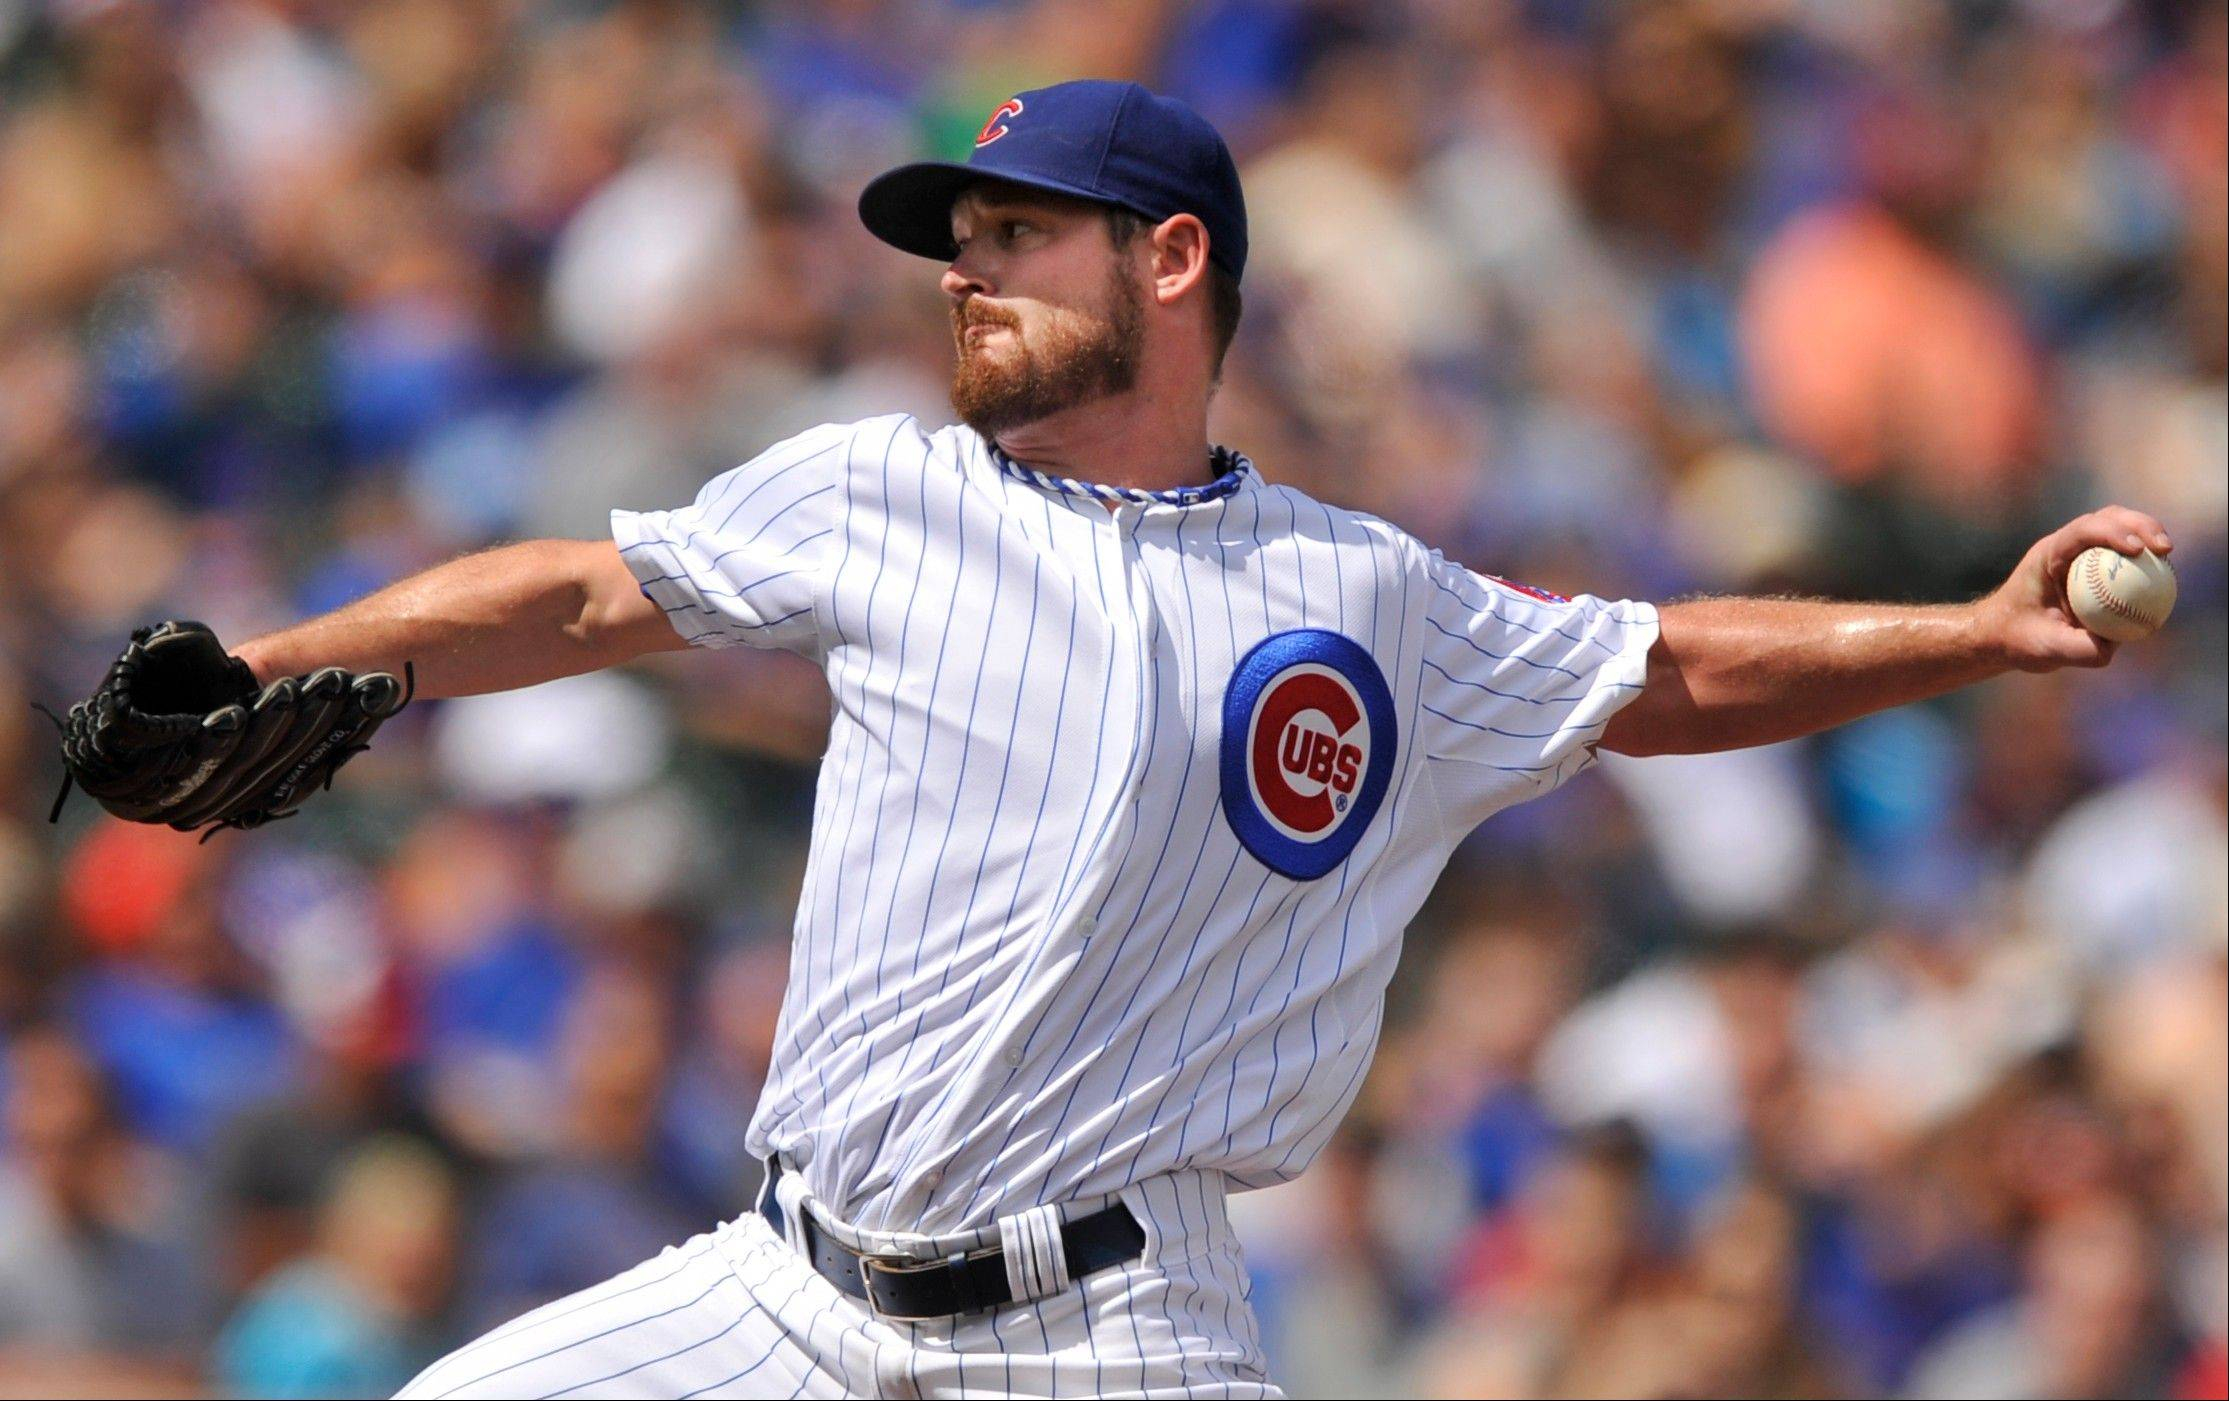 Wood's bid for quality start ends early in Cubs' loss